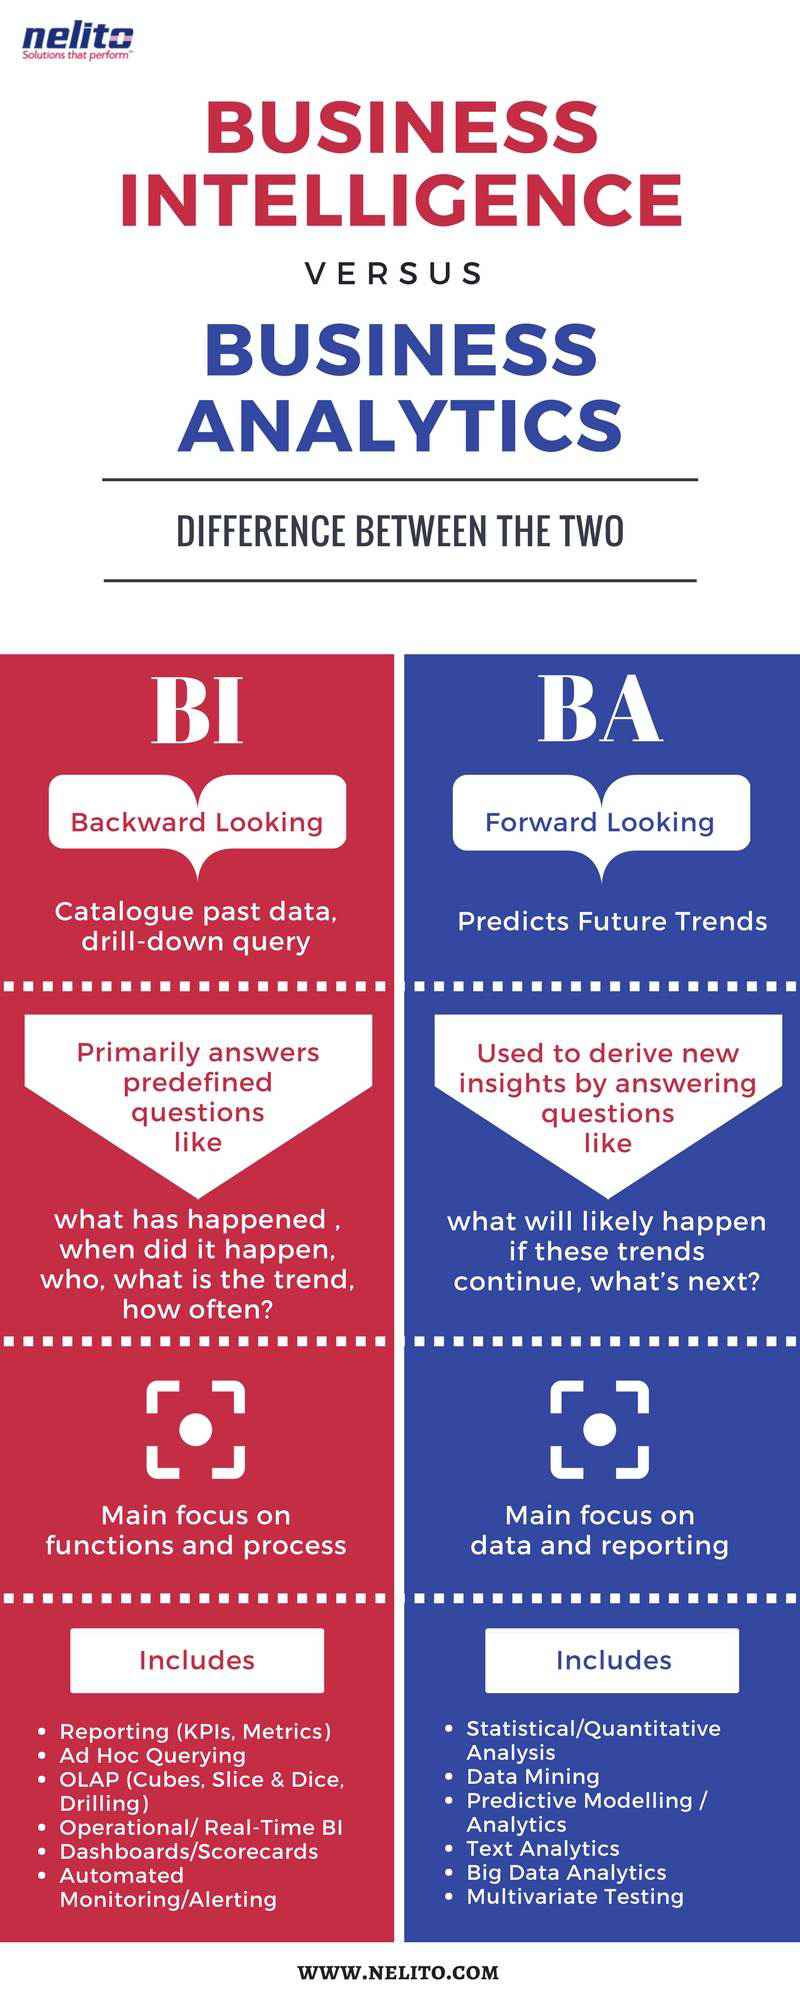 Alt - Business Intelligence versus Business Analytics